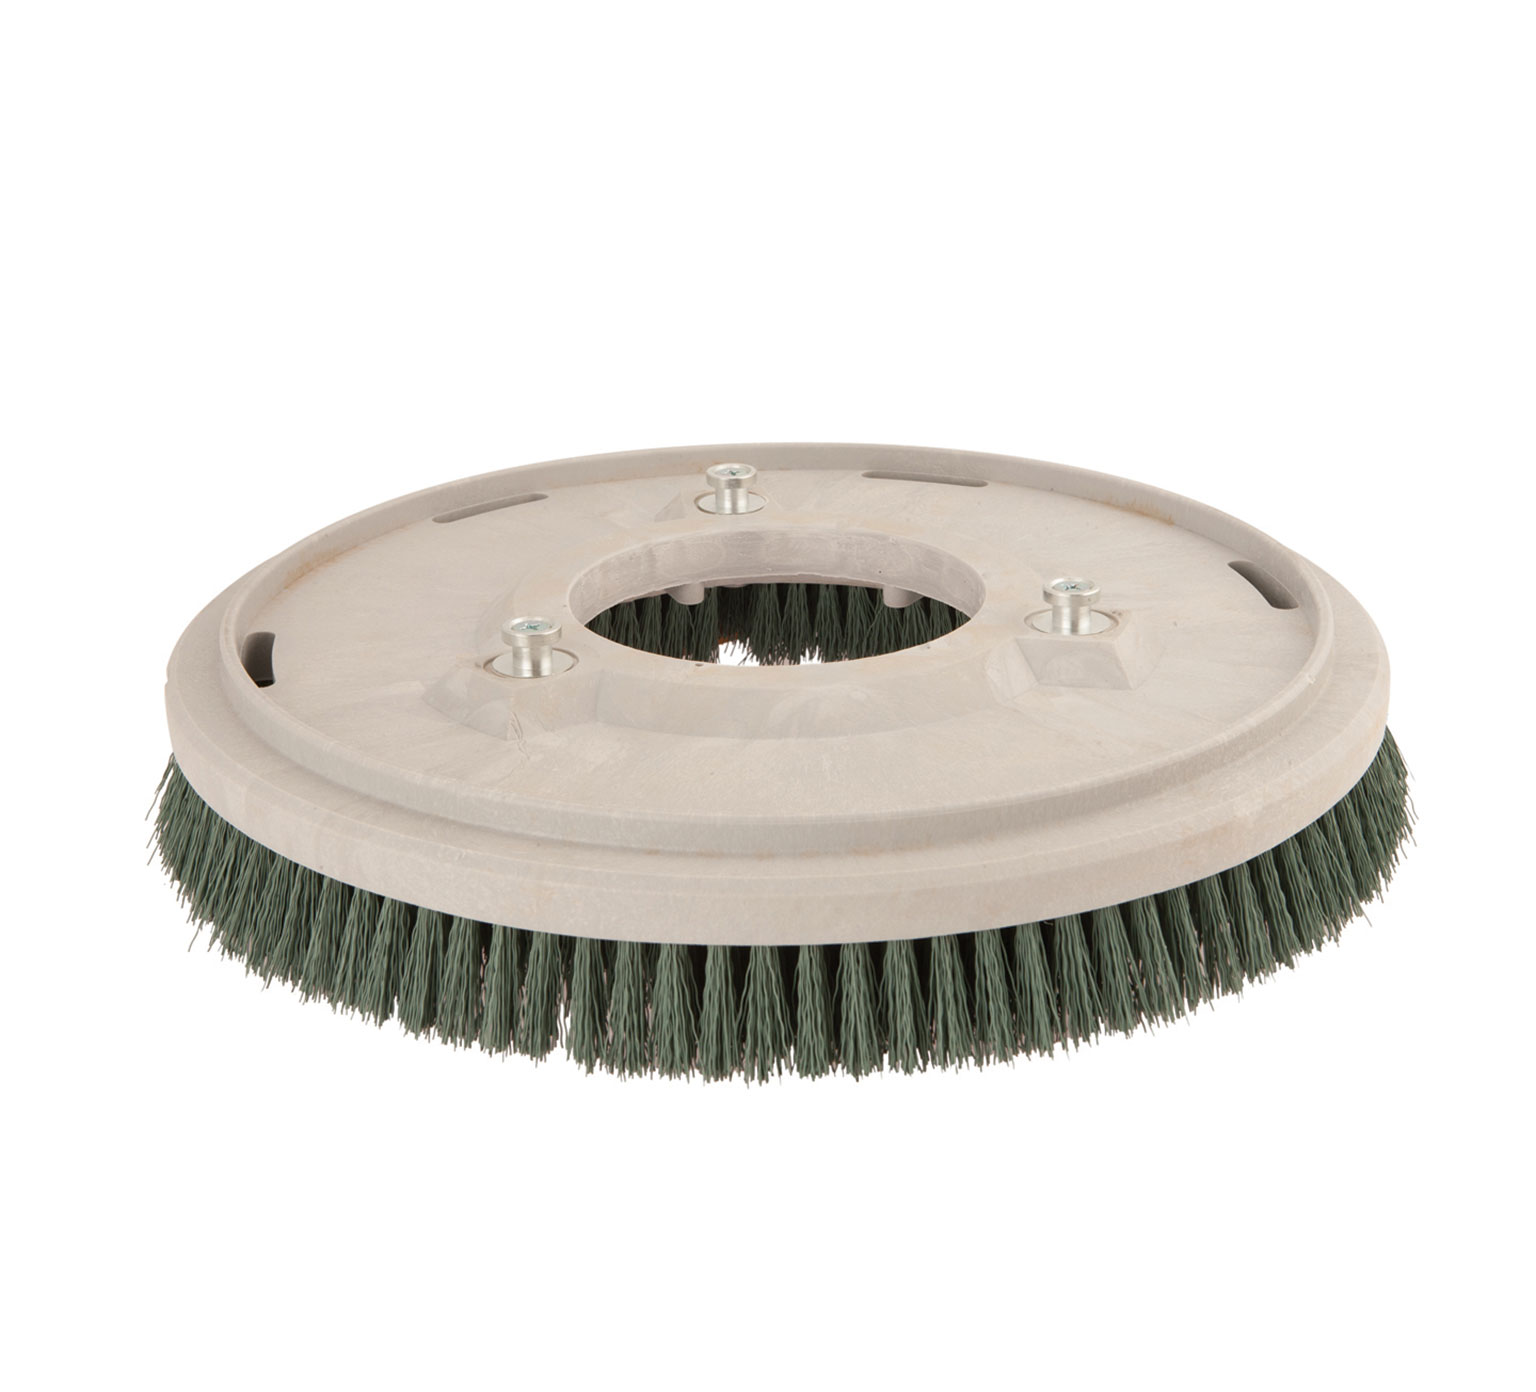 240237 Dyna–Scrub Disk Scrub Brush – 17 in / 432 mm alt 1